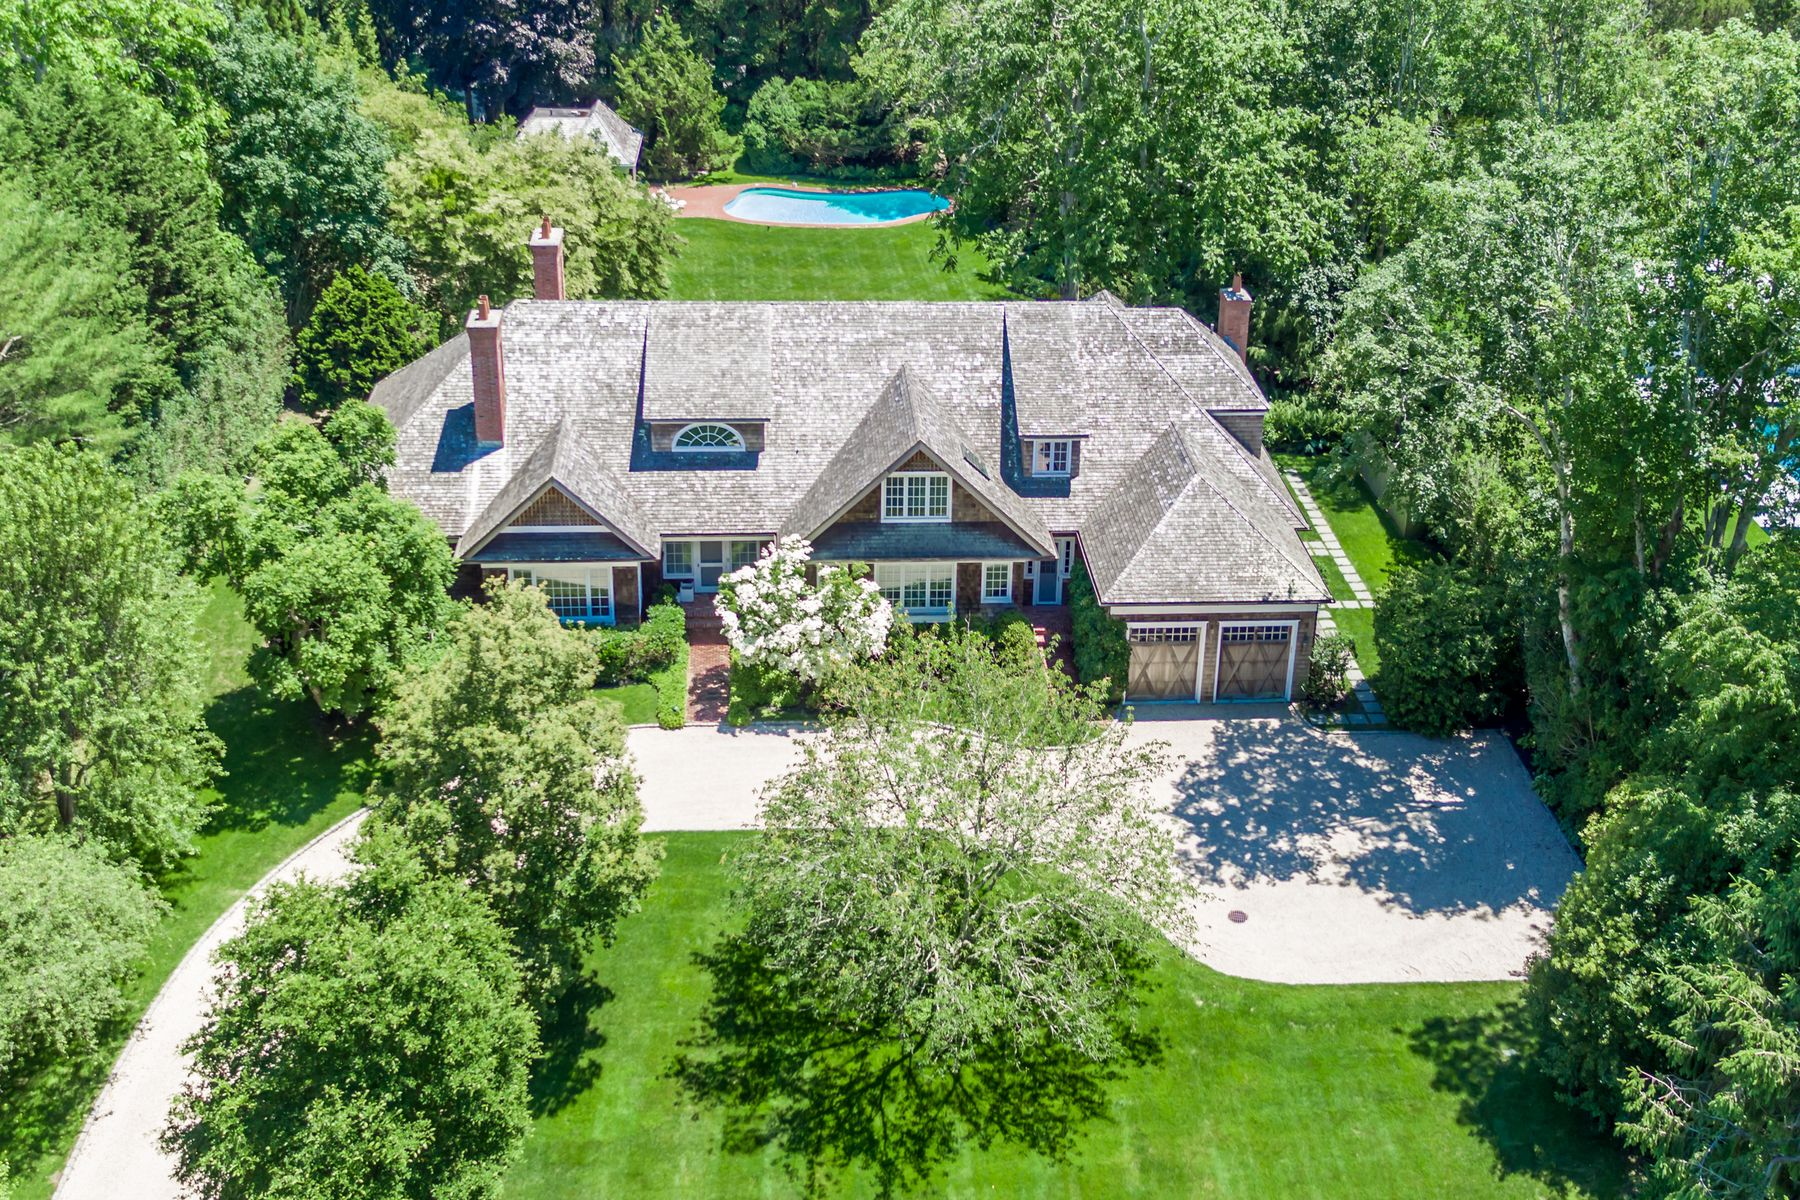 Single Family Home for Rent at Hither Lane Gated Estate 78 Hither Lane East Hampton, New York 11937 United States